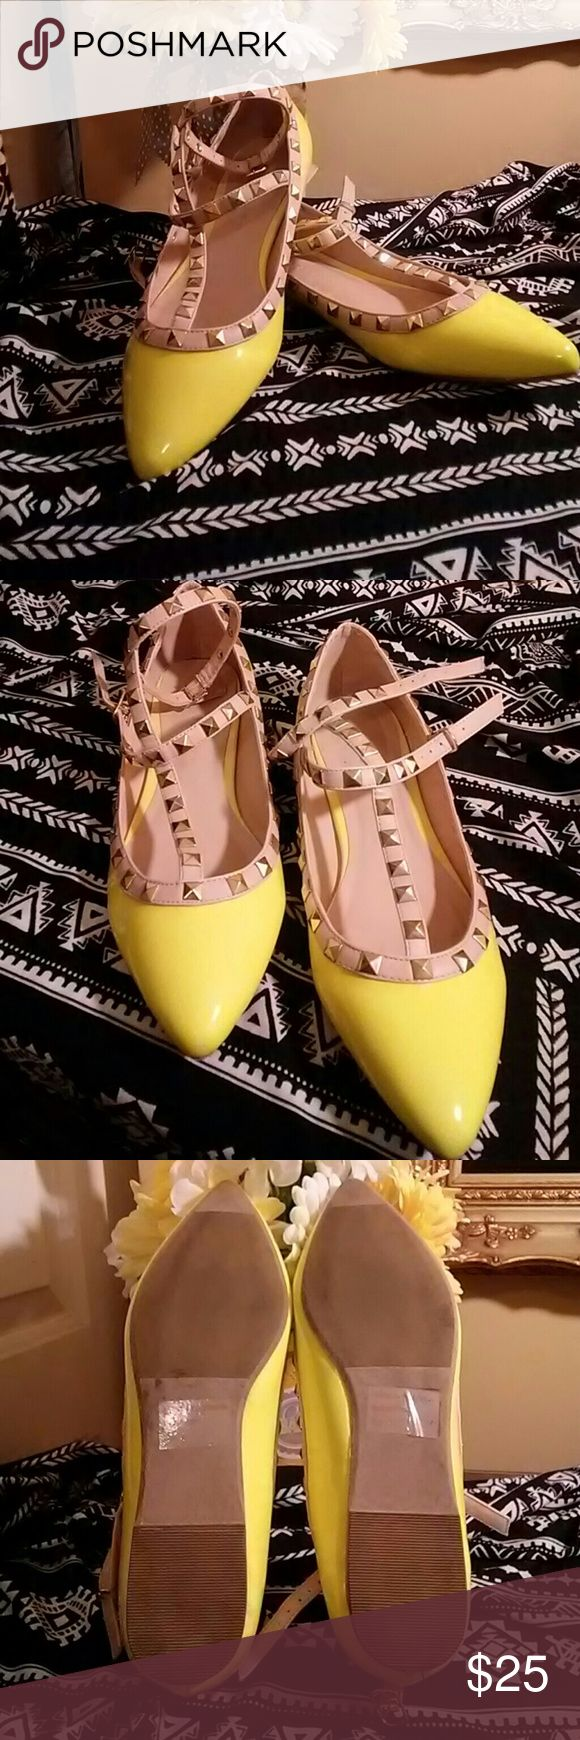 Yellow Neon Flats Flats with studs around it , they were worn once only they are in great condition. Size 8 diva Shoes Flats & Loafers